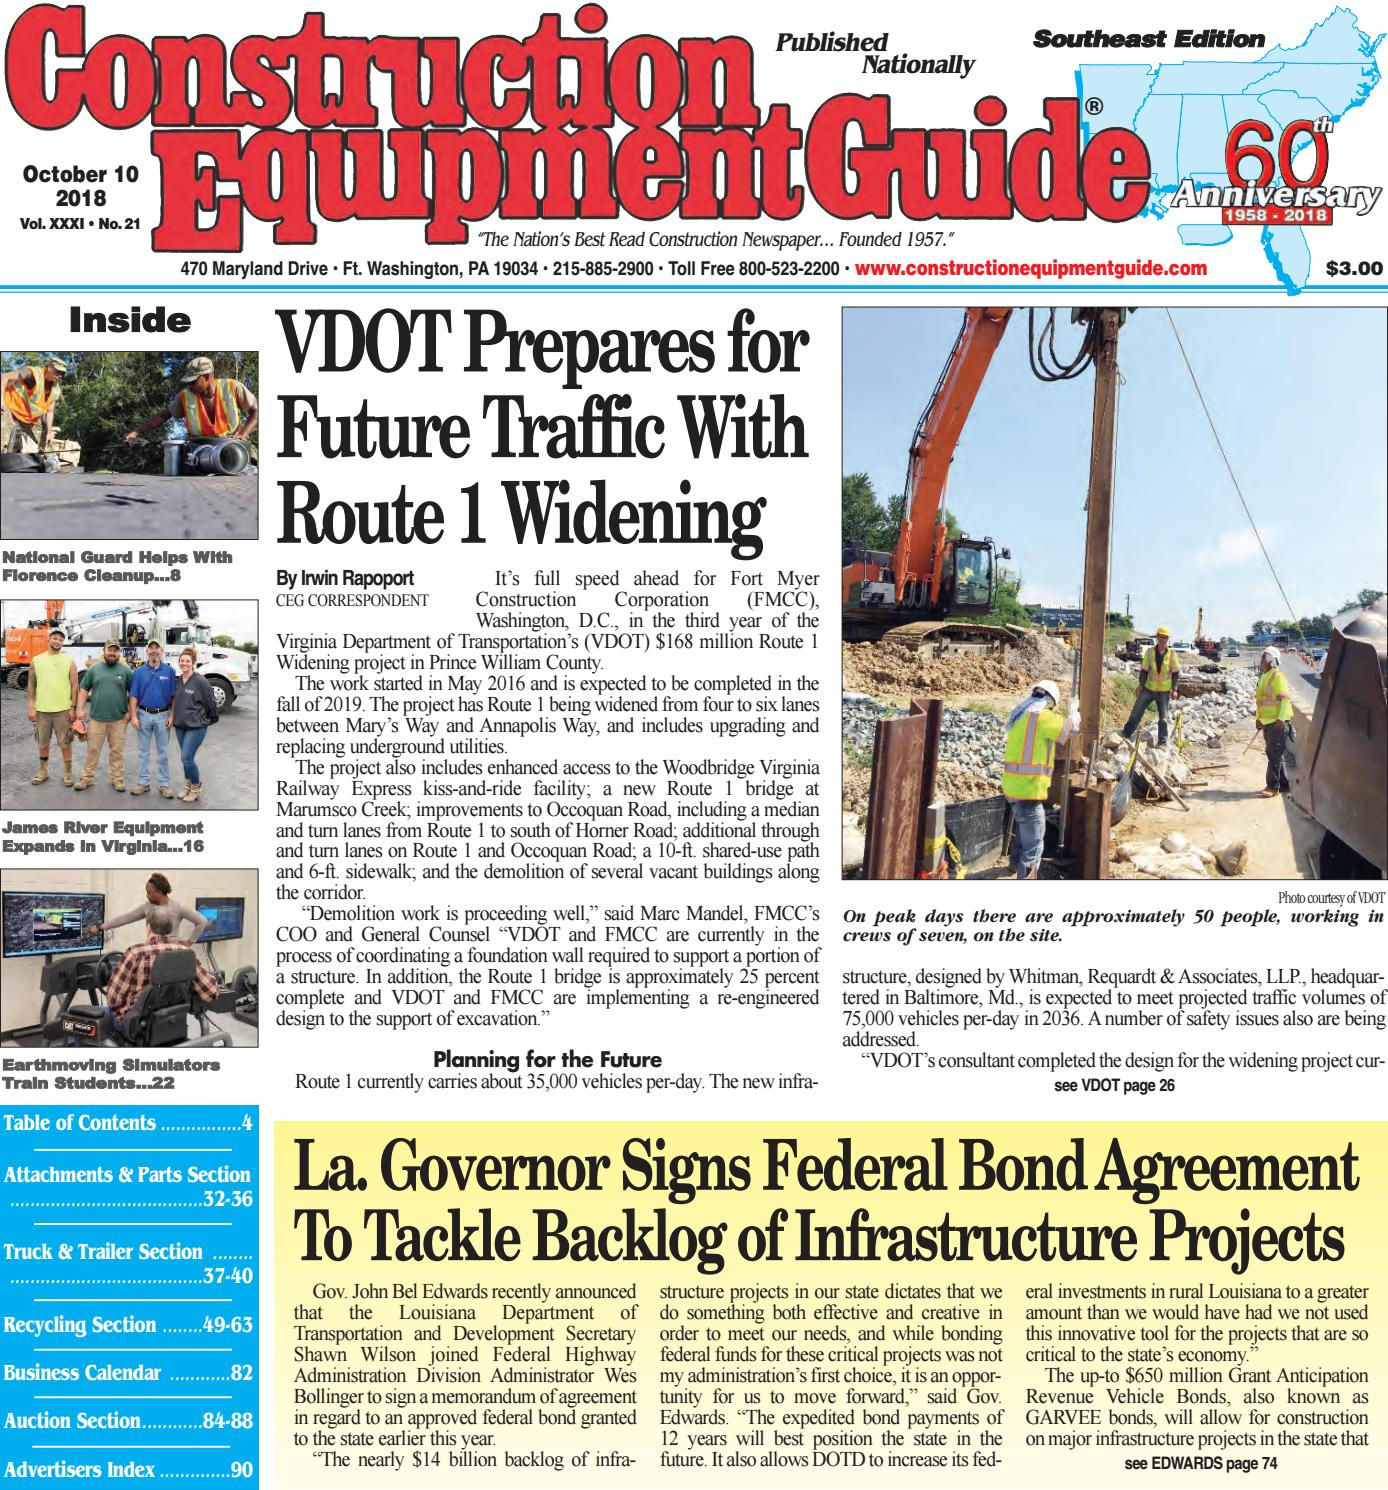 Southeast 21 October 10, 2018 by Construction Equipment Guide - issuu